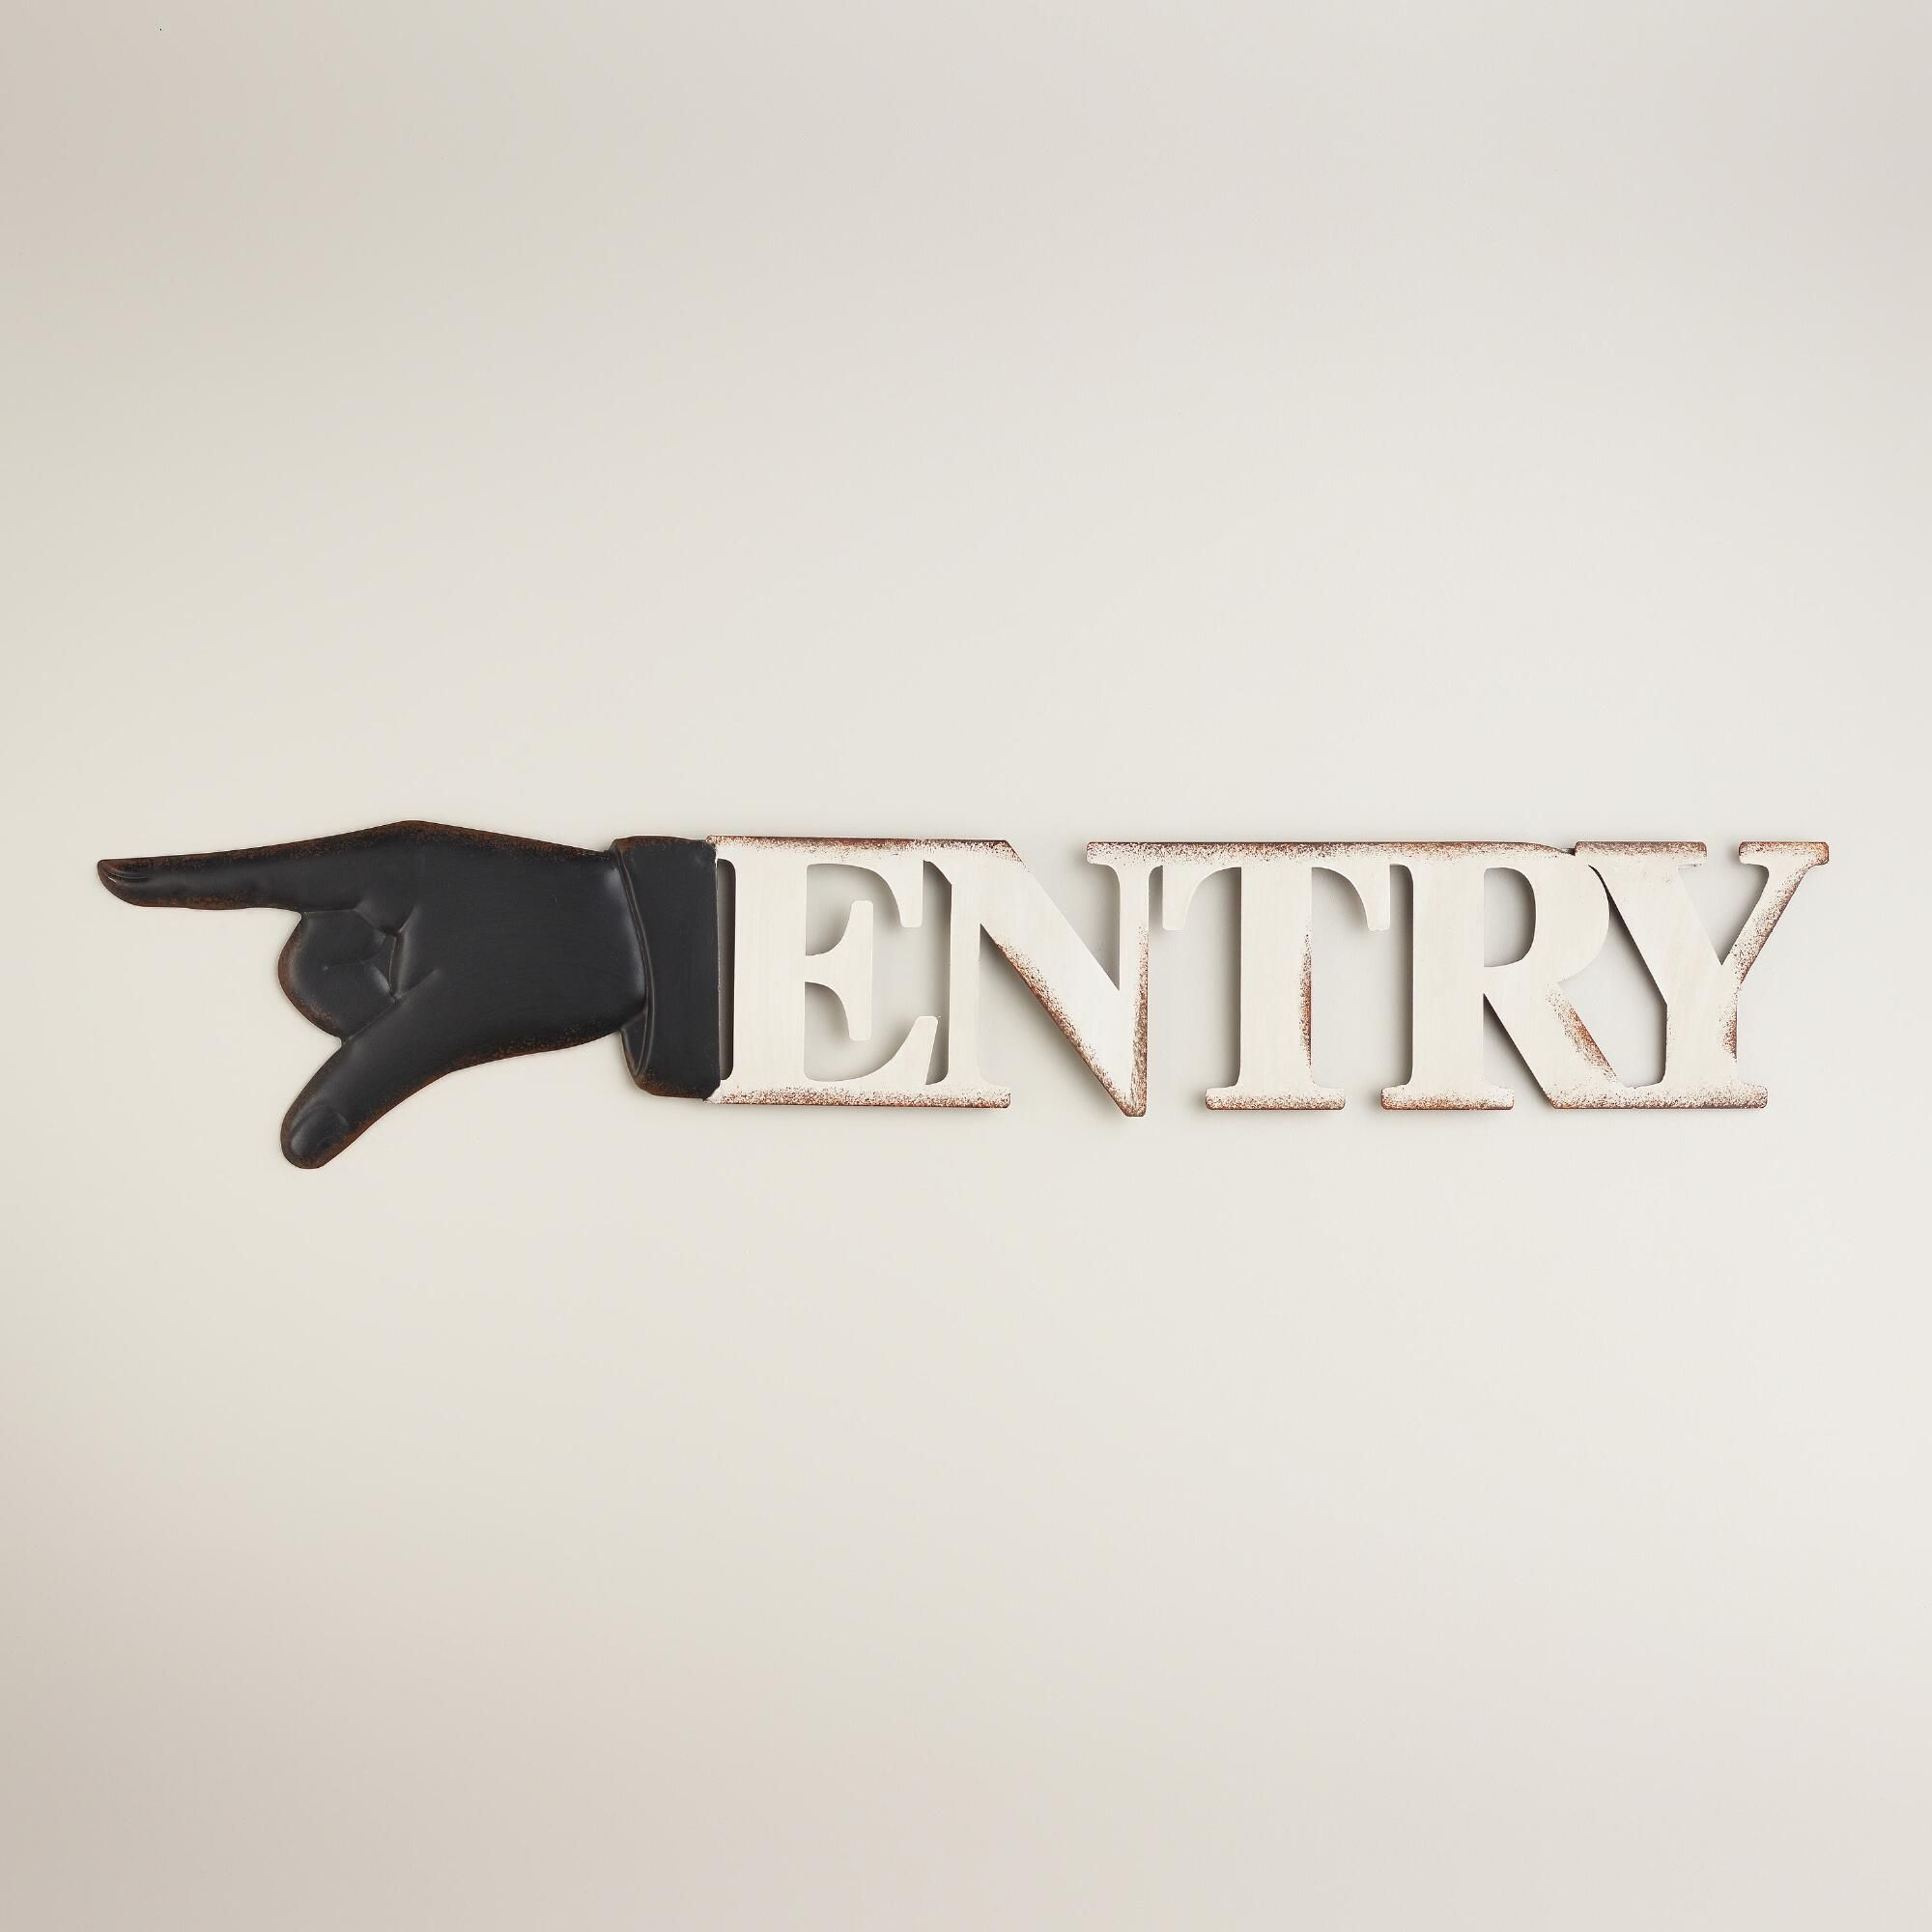 Metal retro entry sign world market gifts pinterest retro